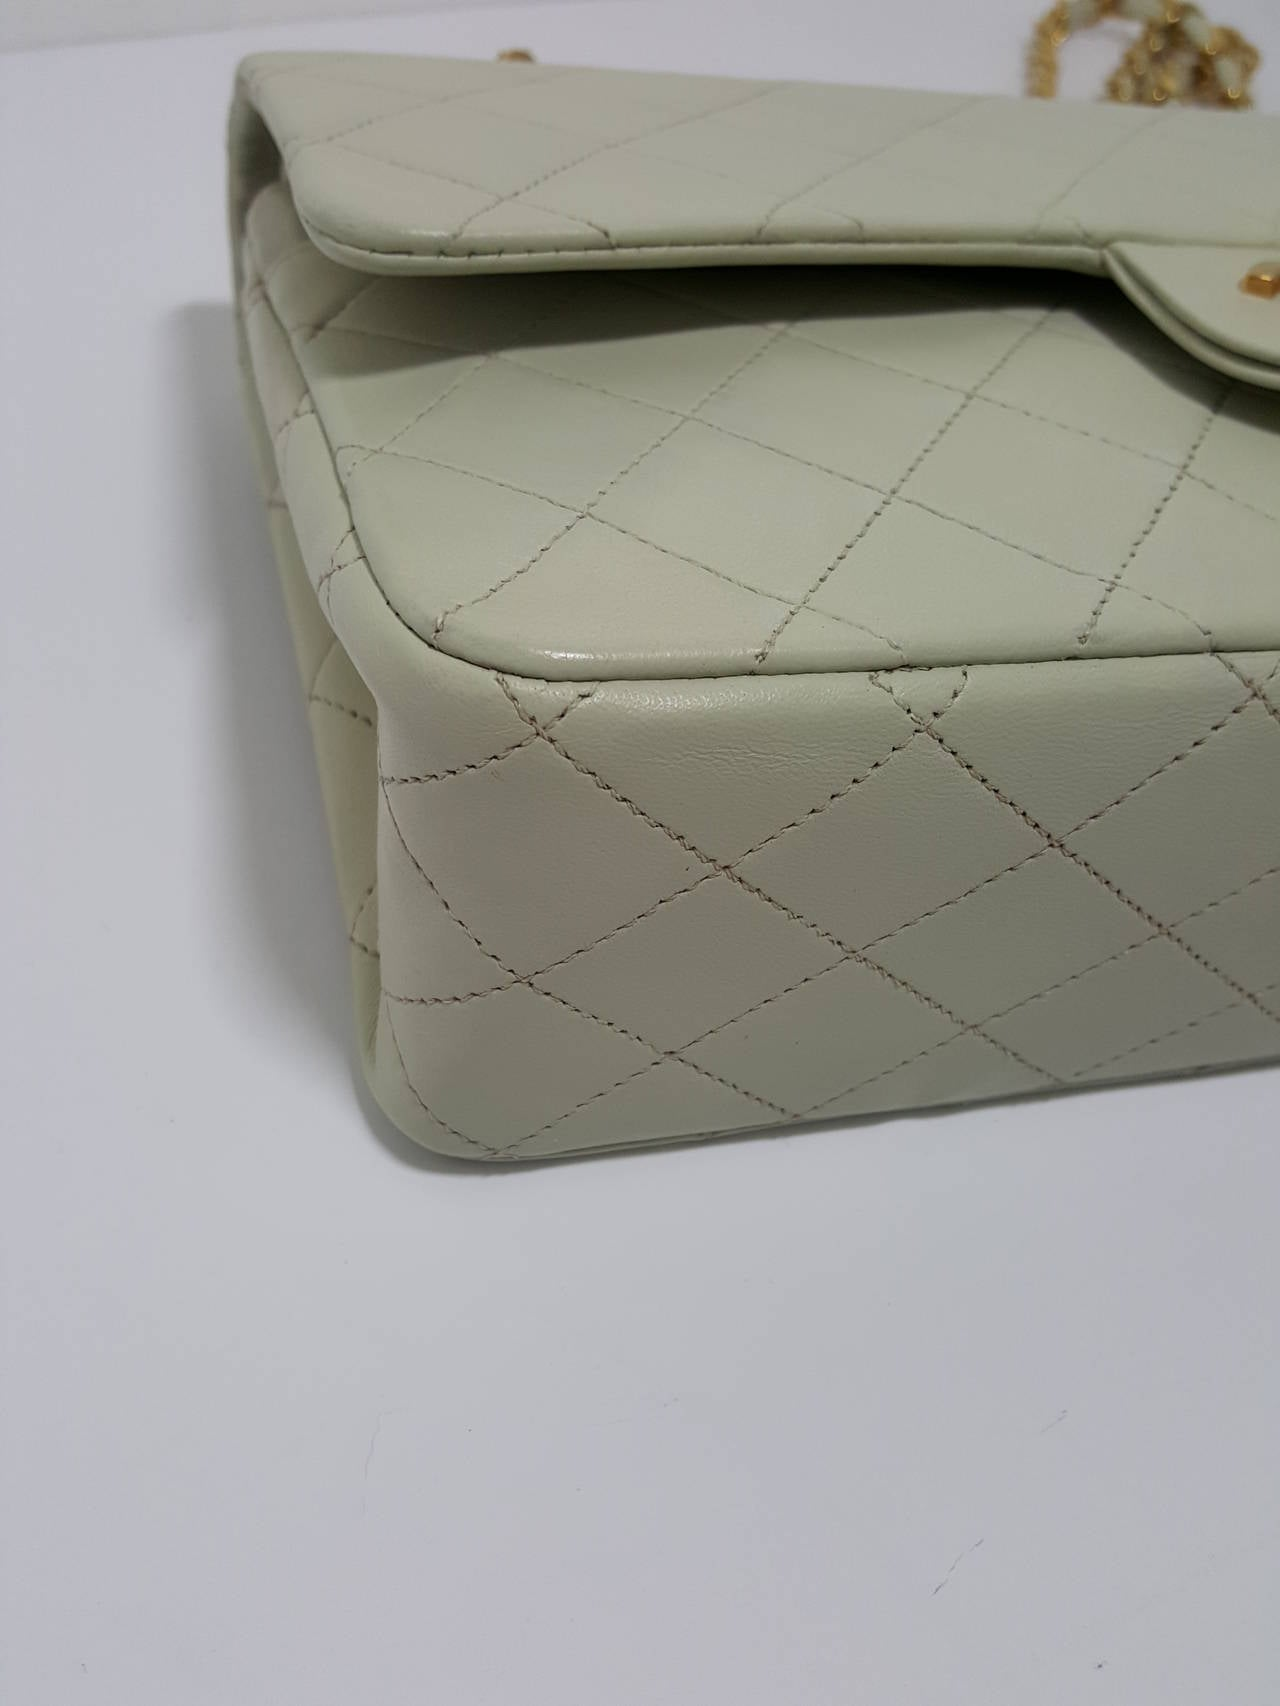 Lovely Vintage Cream Chanel Double Flap Classic with Gold Hardware. 8